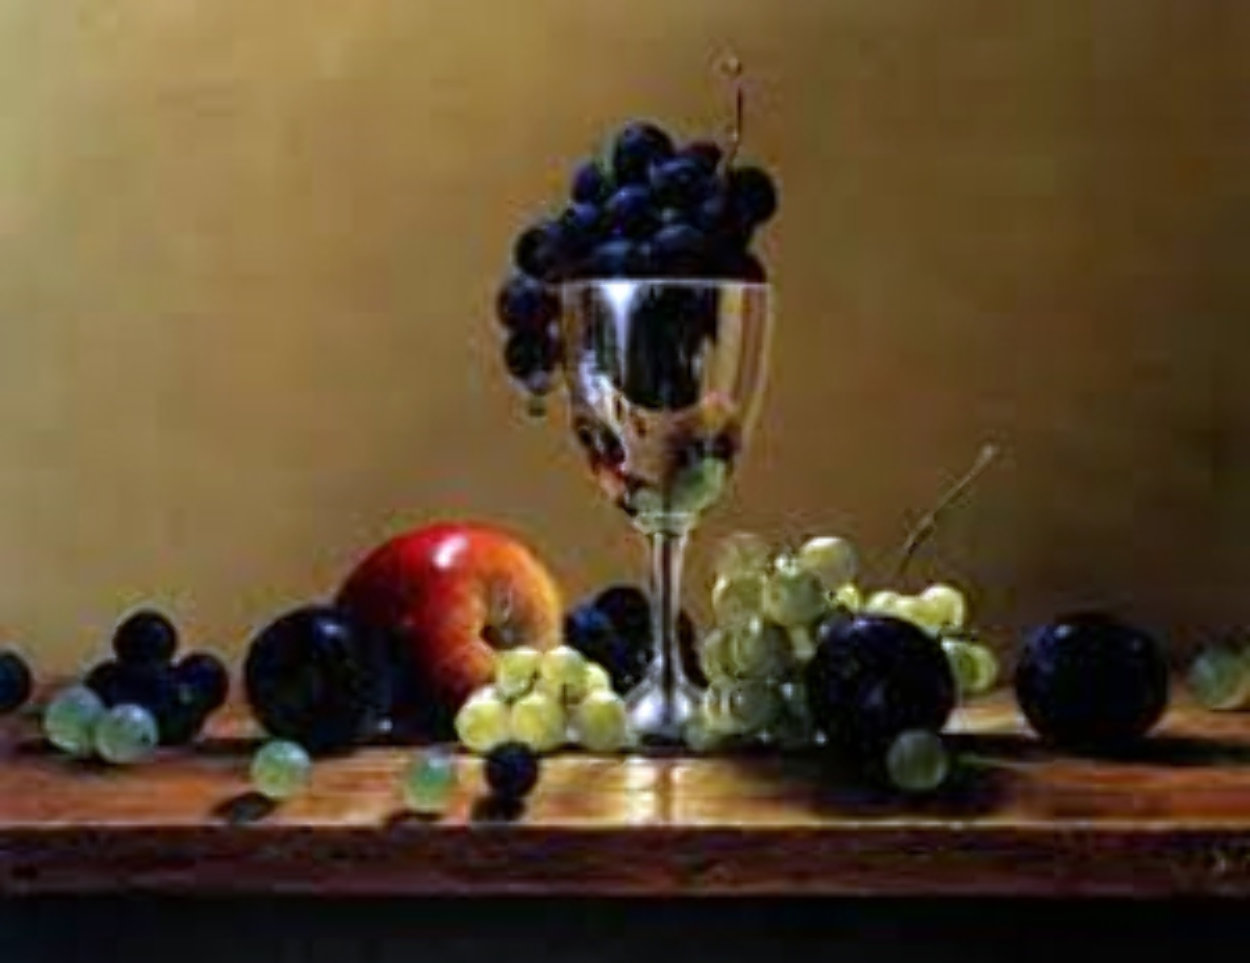 Delicious PP 1996 Limited Edition Print by Charles Becker